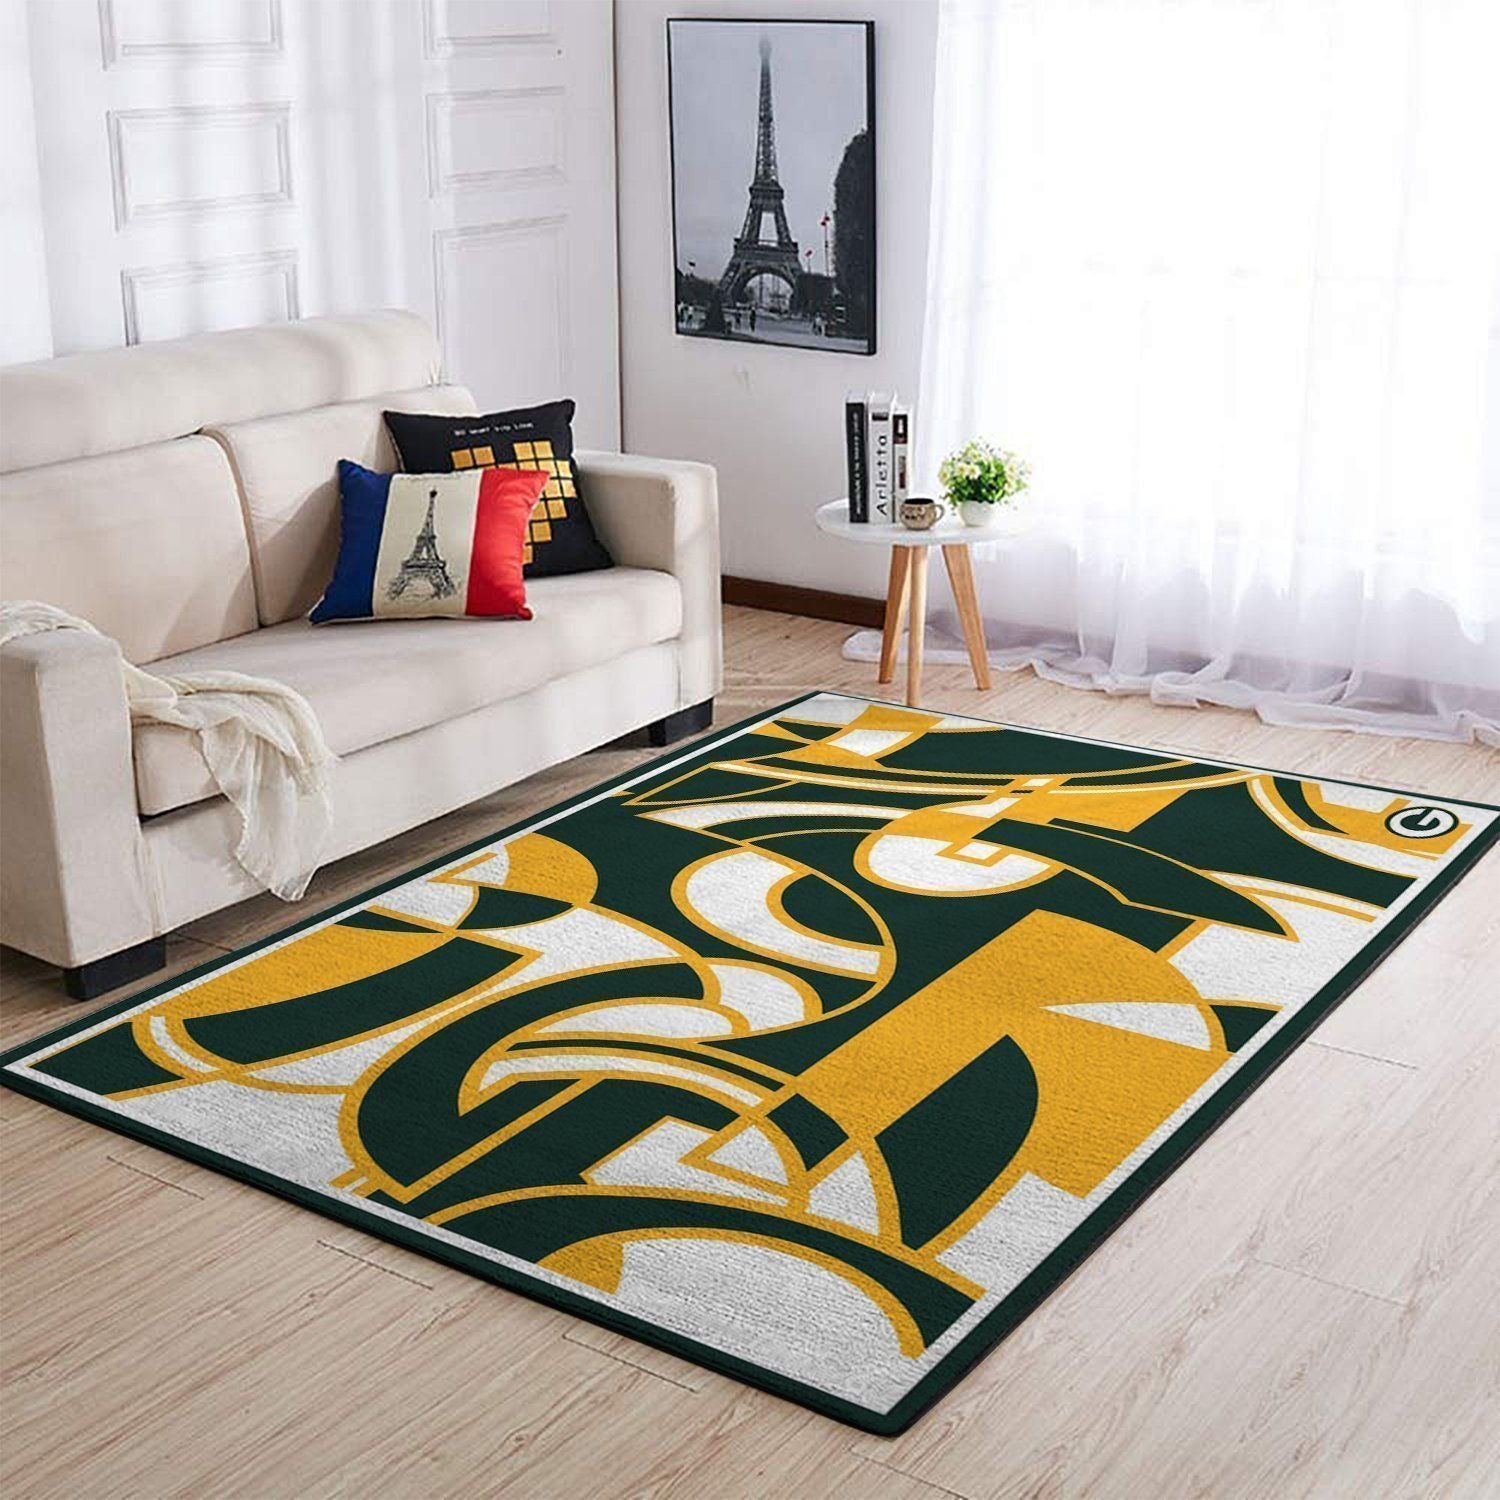 Green Bay Packers Area Rugs NFL Football Living Room Carpet Team Logo Custom Floor Home Decor 1910071